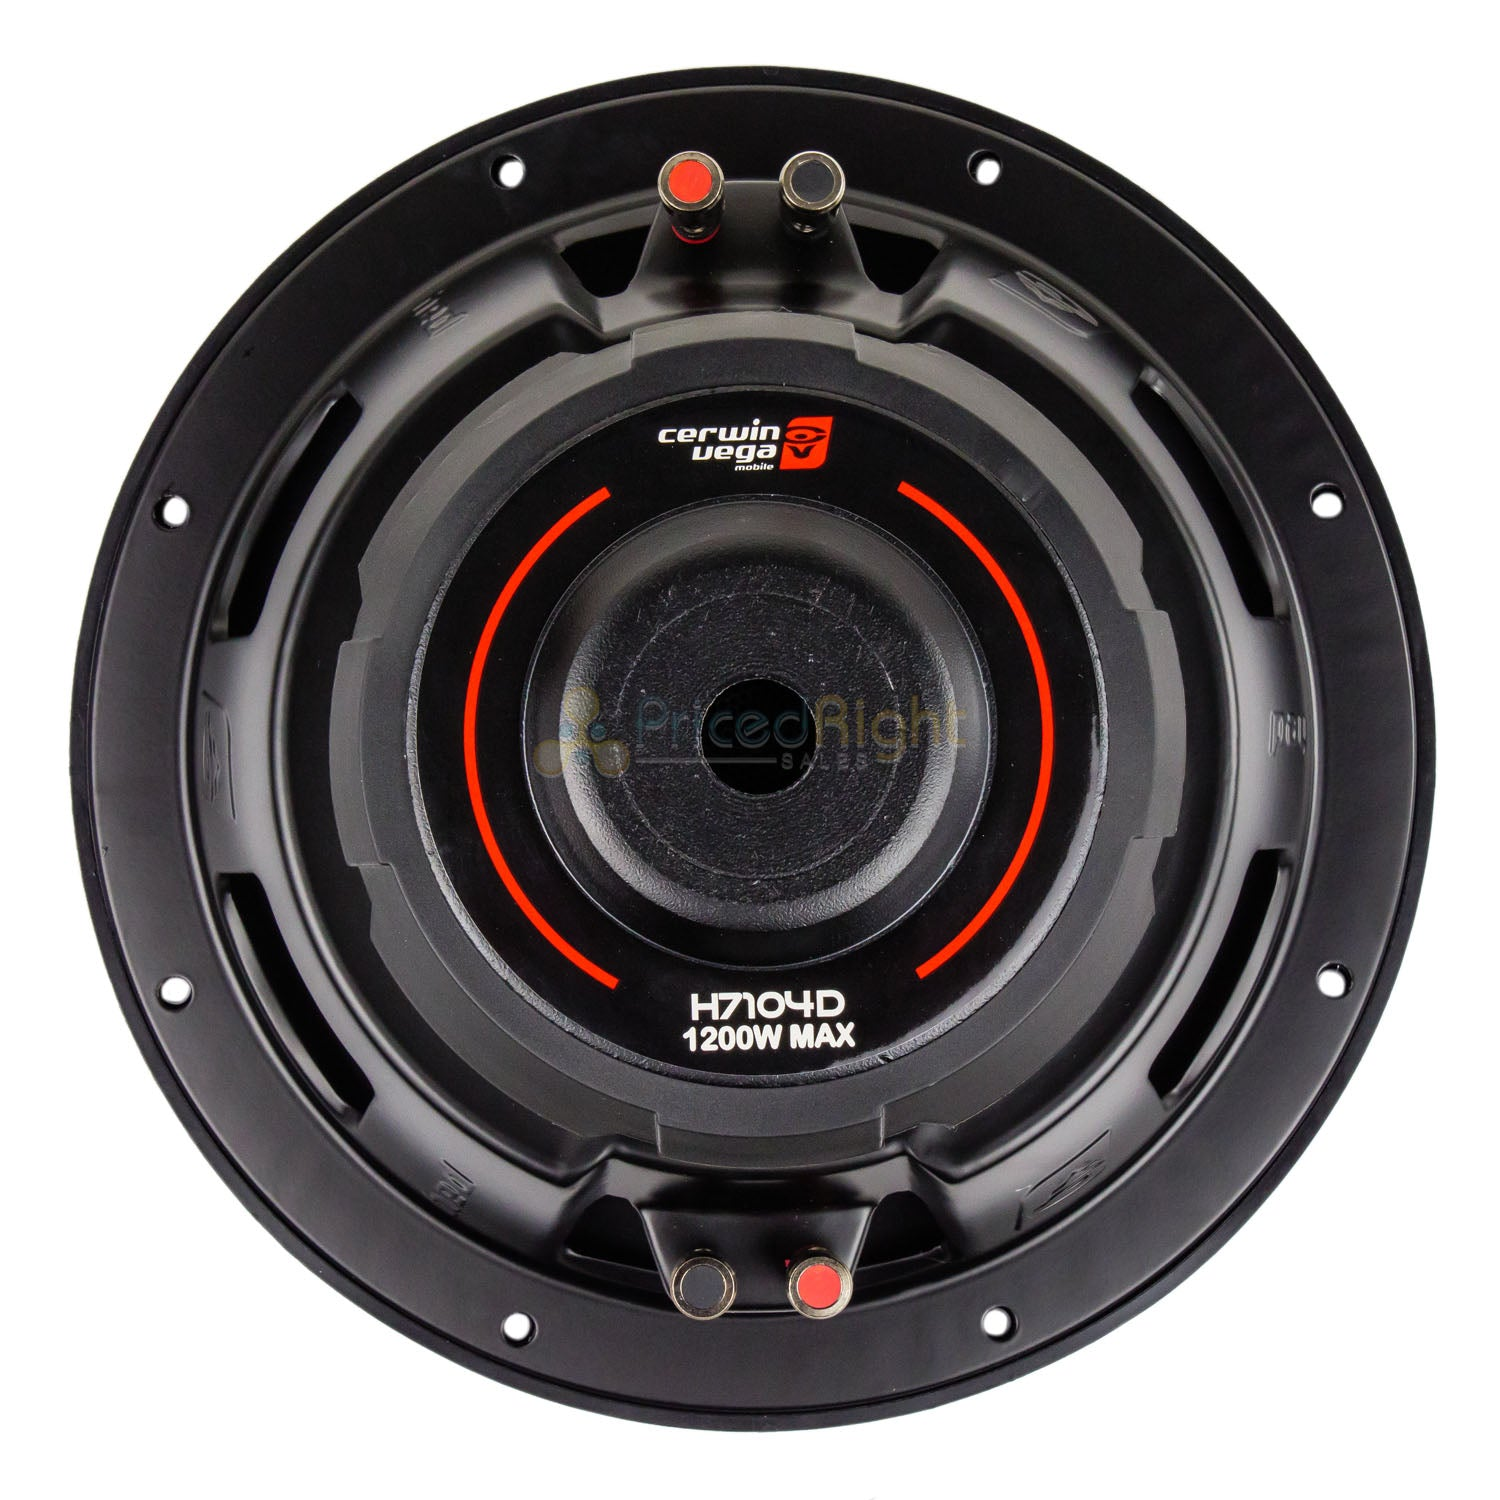 "2 Pack Cerwin Vega 10"" Subwoofer Dual 4 Ohm 1200W Max DVC HED Series H7104D"